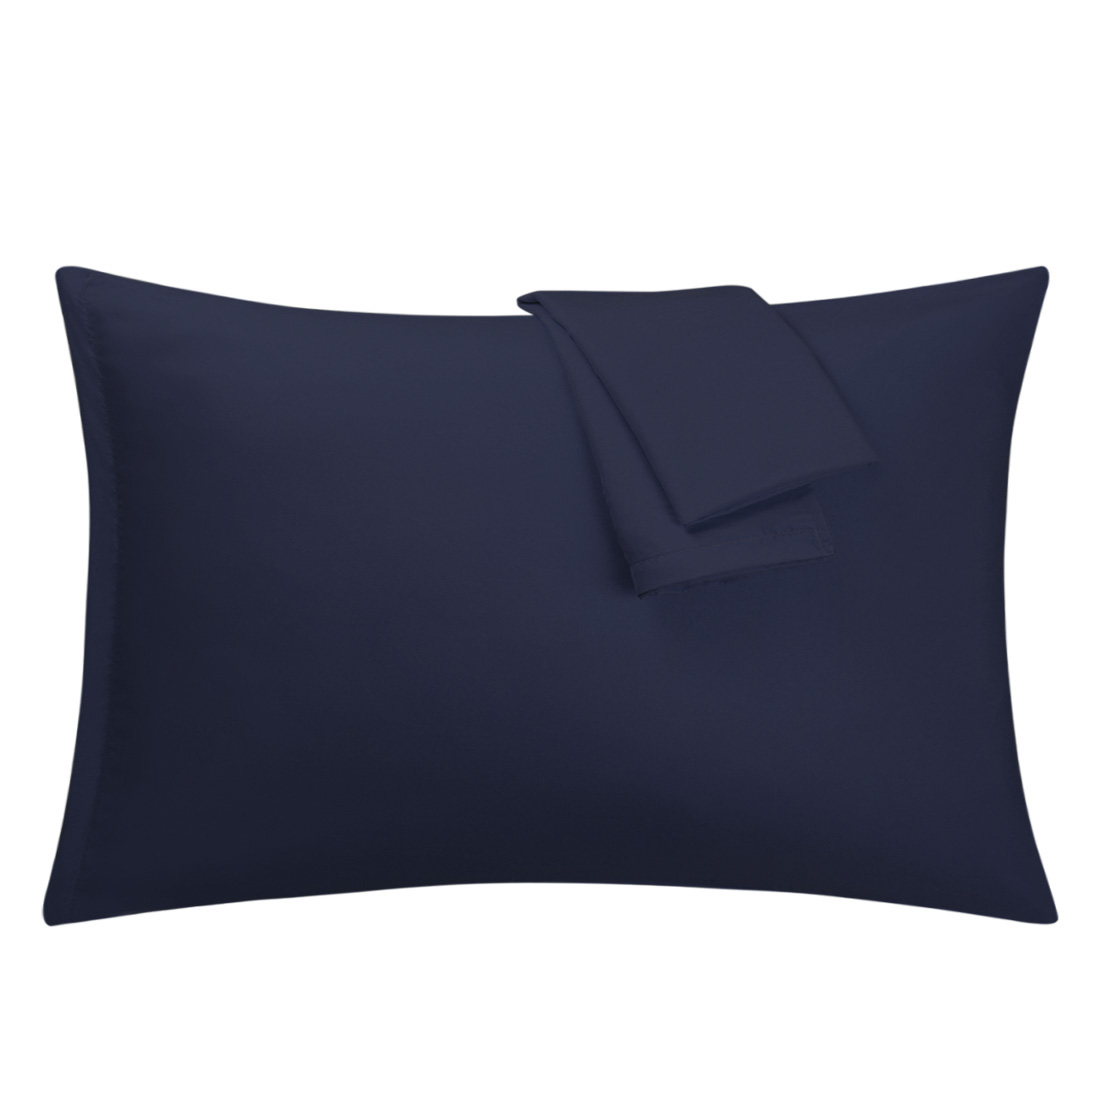 Navy Pillowcases Soft Microfiber Pillow Case Cover with Zipper Queen, 2 Pack